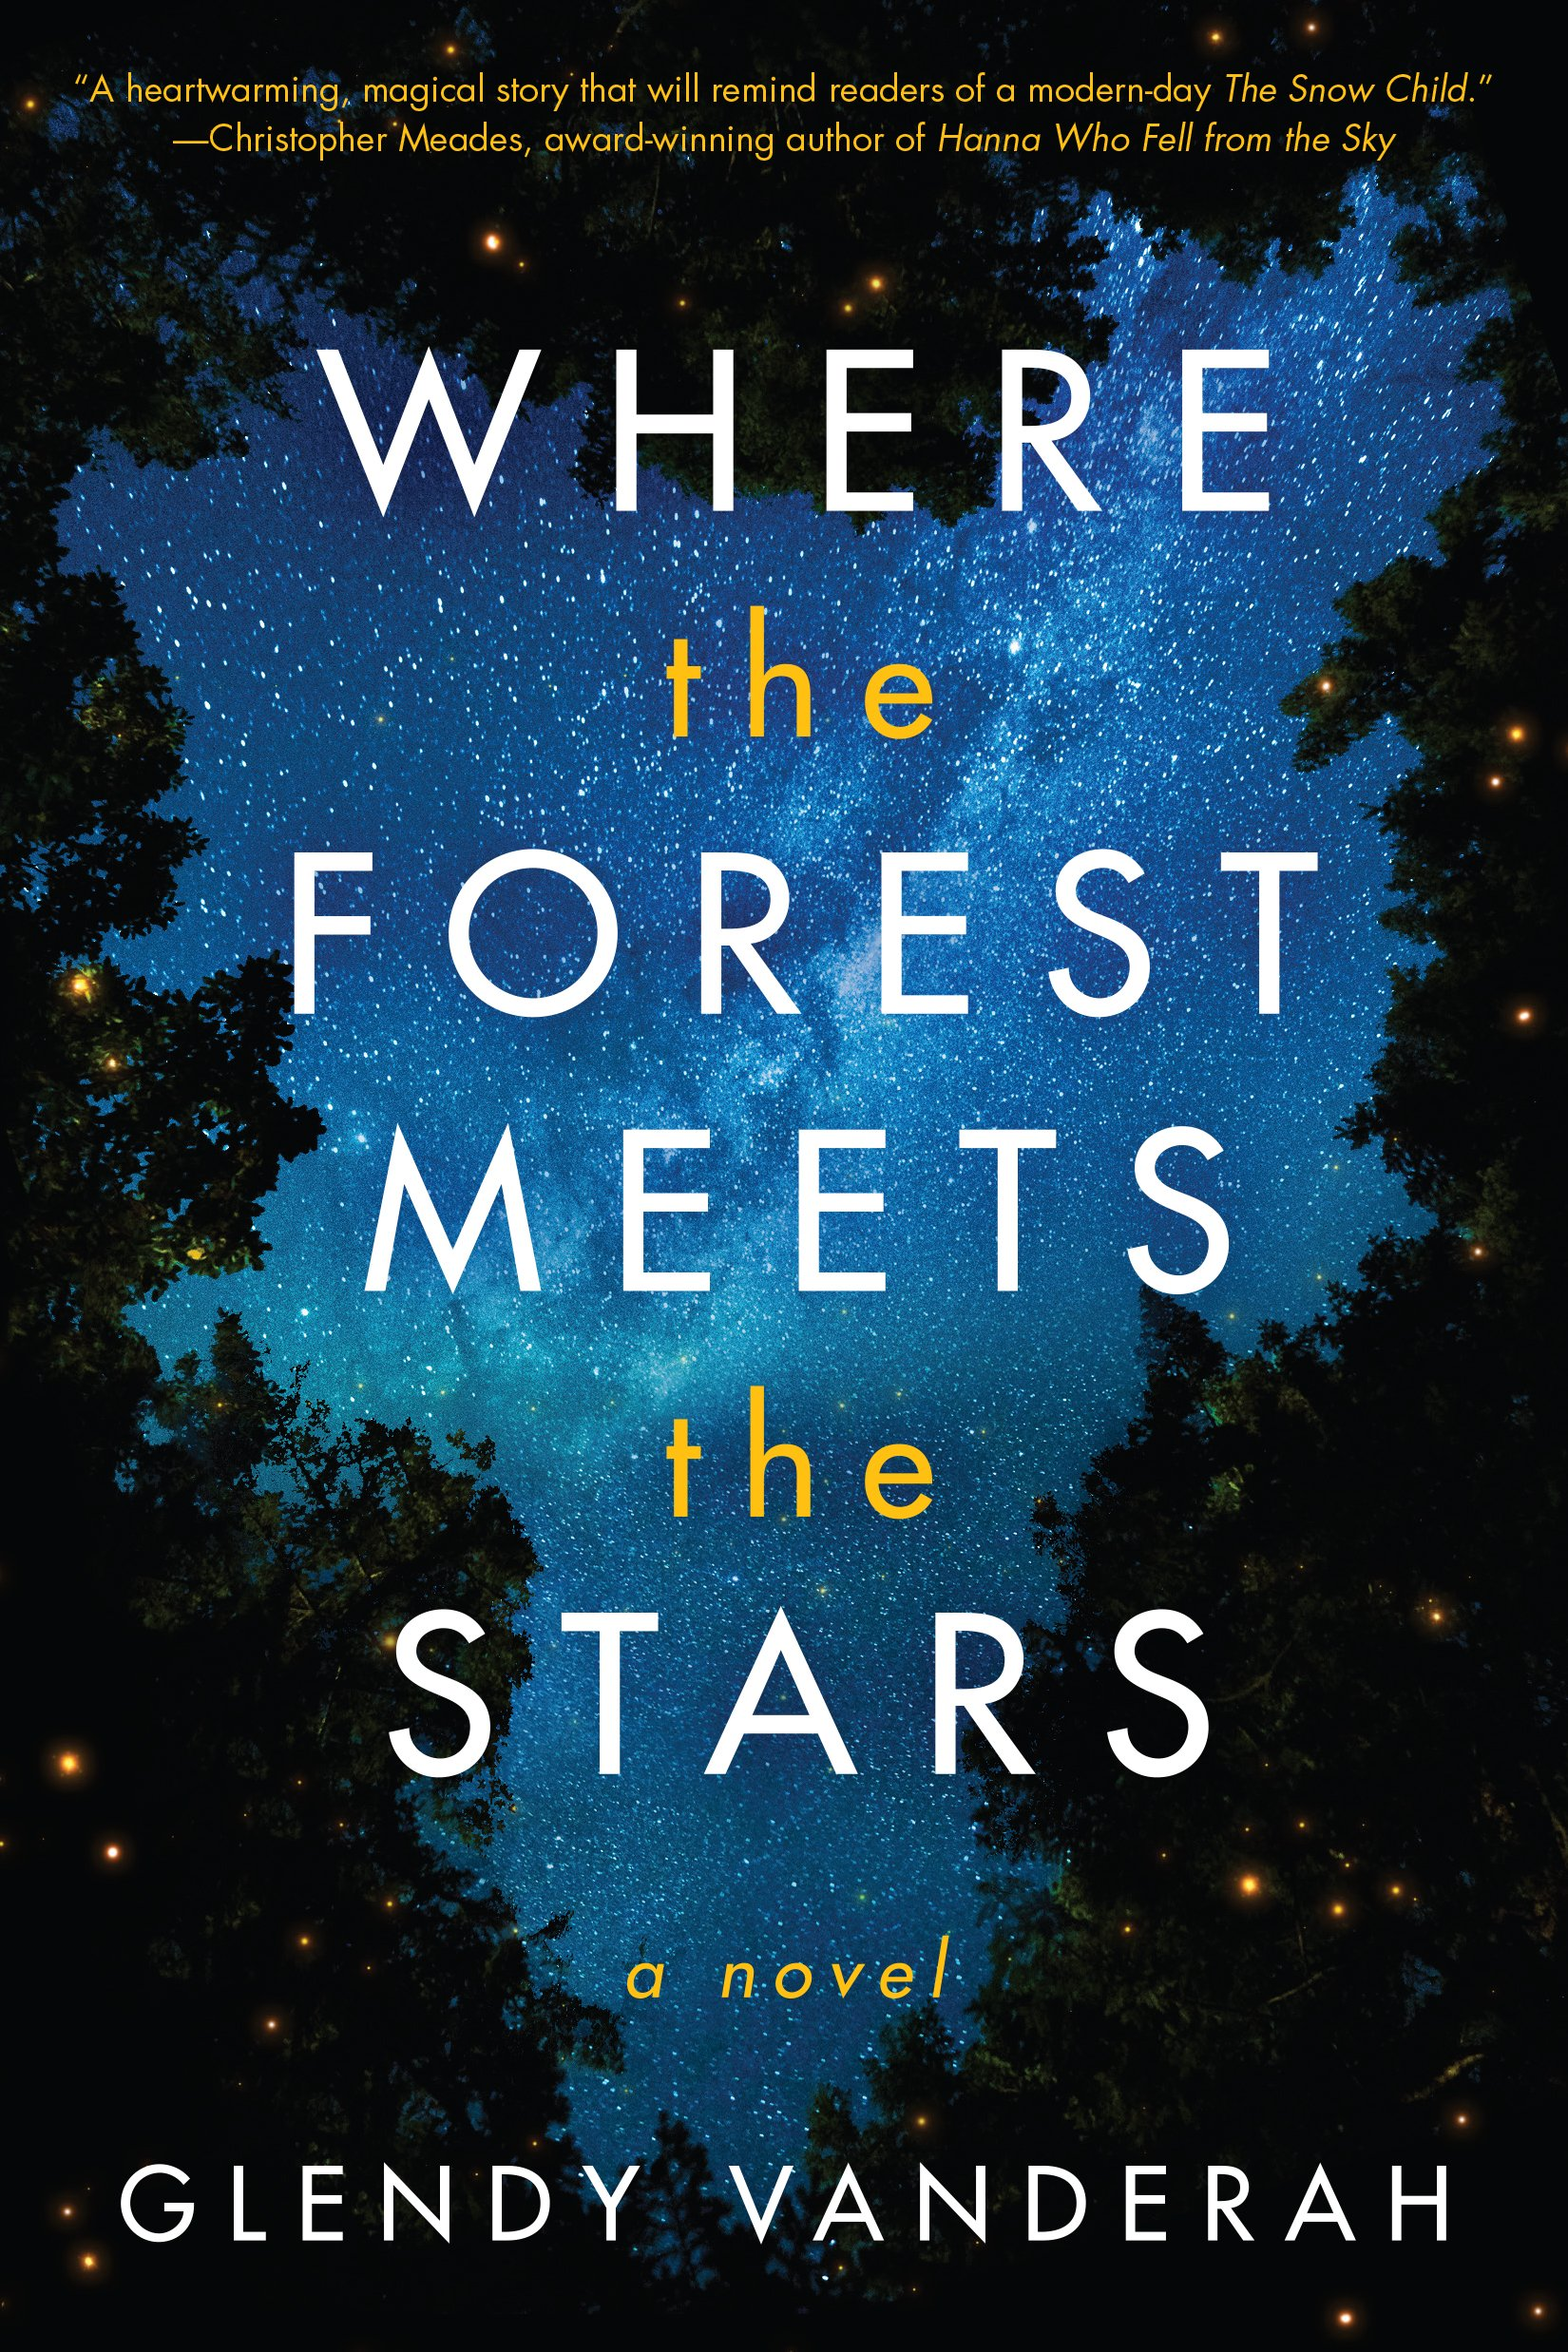 100 Books To Read Before You Die: Where The Forest Meets The Stars